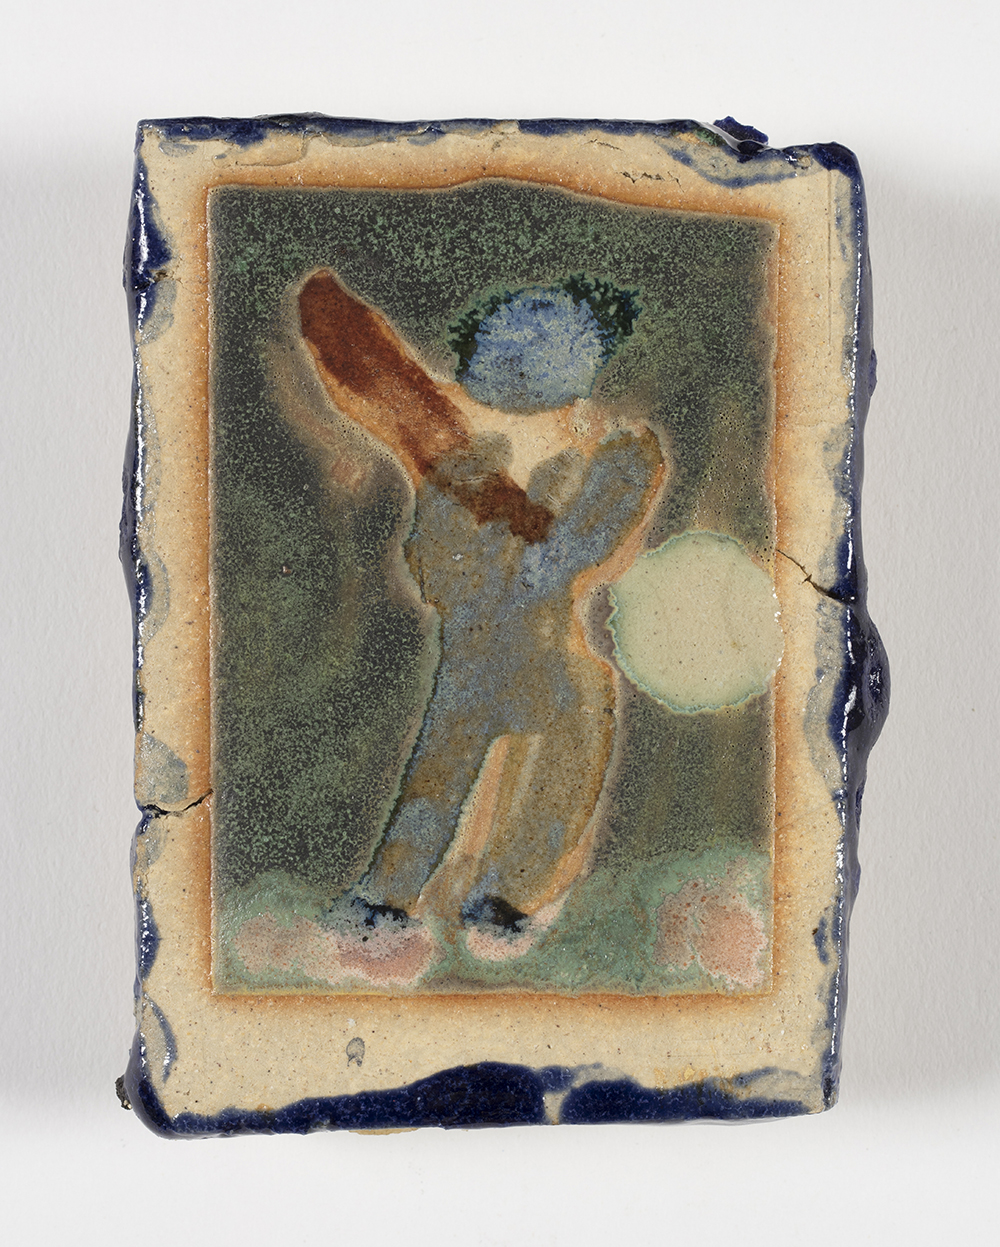 Kevin McNamee-Tweed.<em> Baseball88</em>, 2019. Glazed ceramic, 3 1/2 x 2 1/2 inches (8.9 x 6.4 cm)